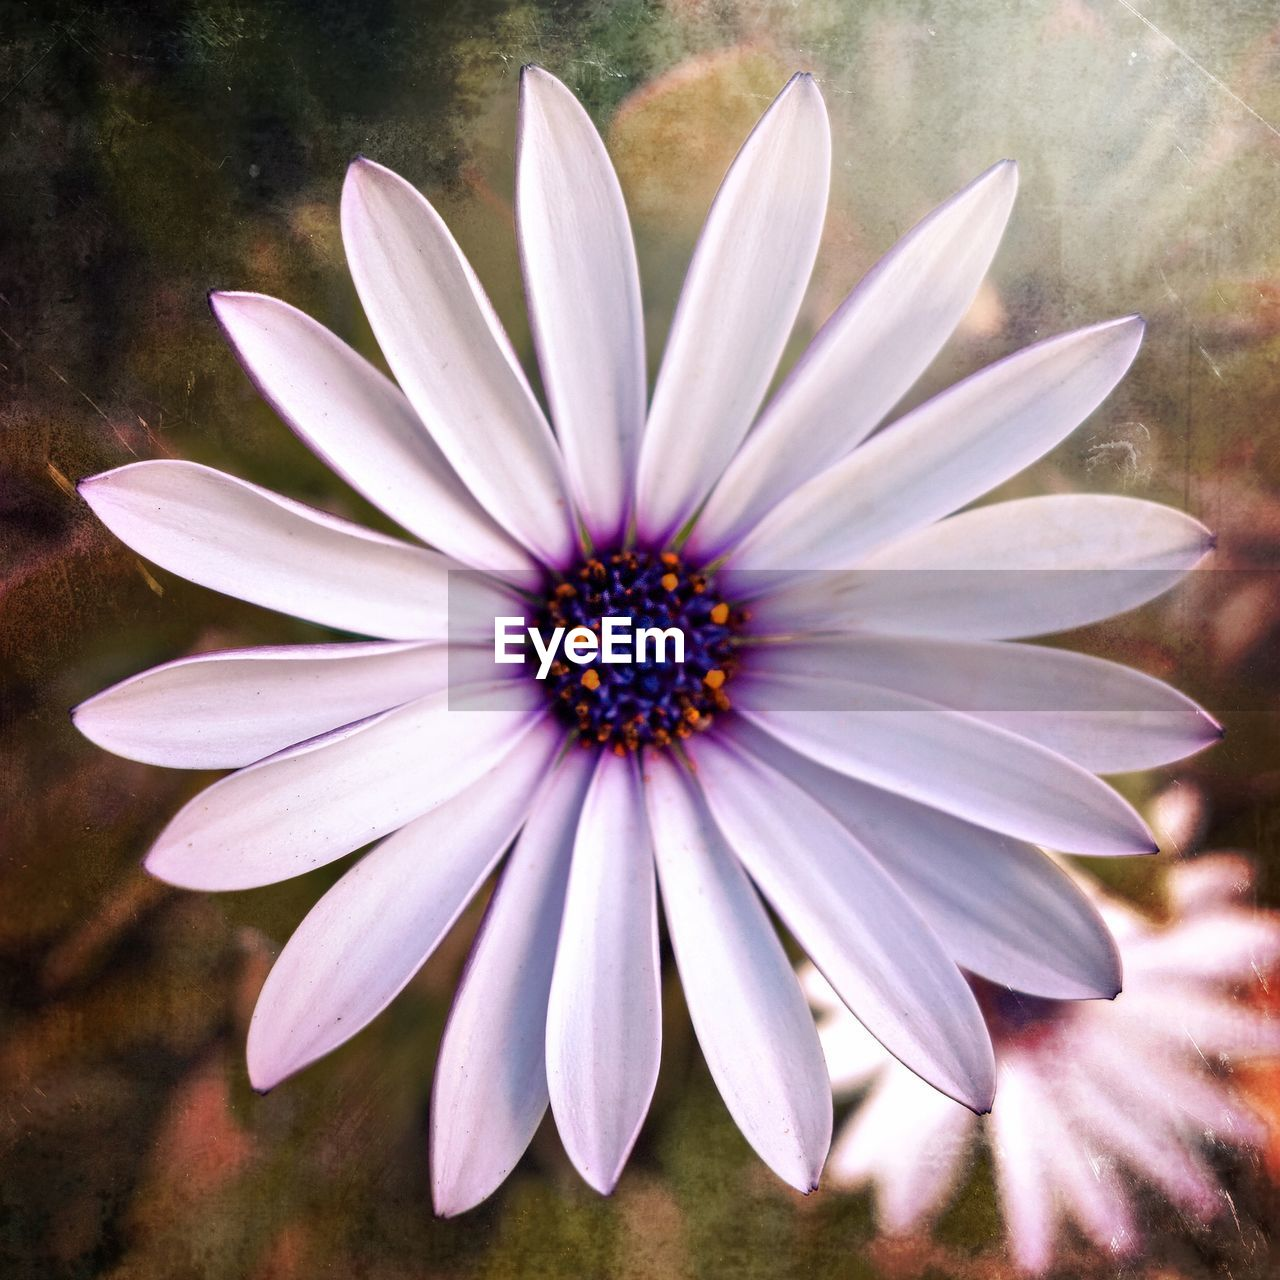 flower, petal, flower head, beauty in nature, nature, fragility, blooming, osteospermum, freshness, growth, day, plant, outdoors, no people, close-up